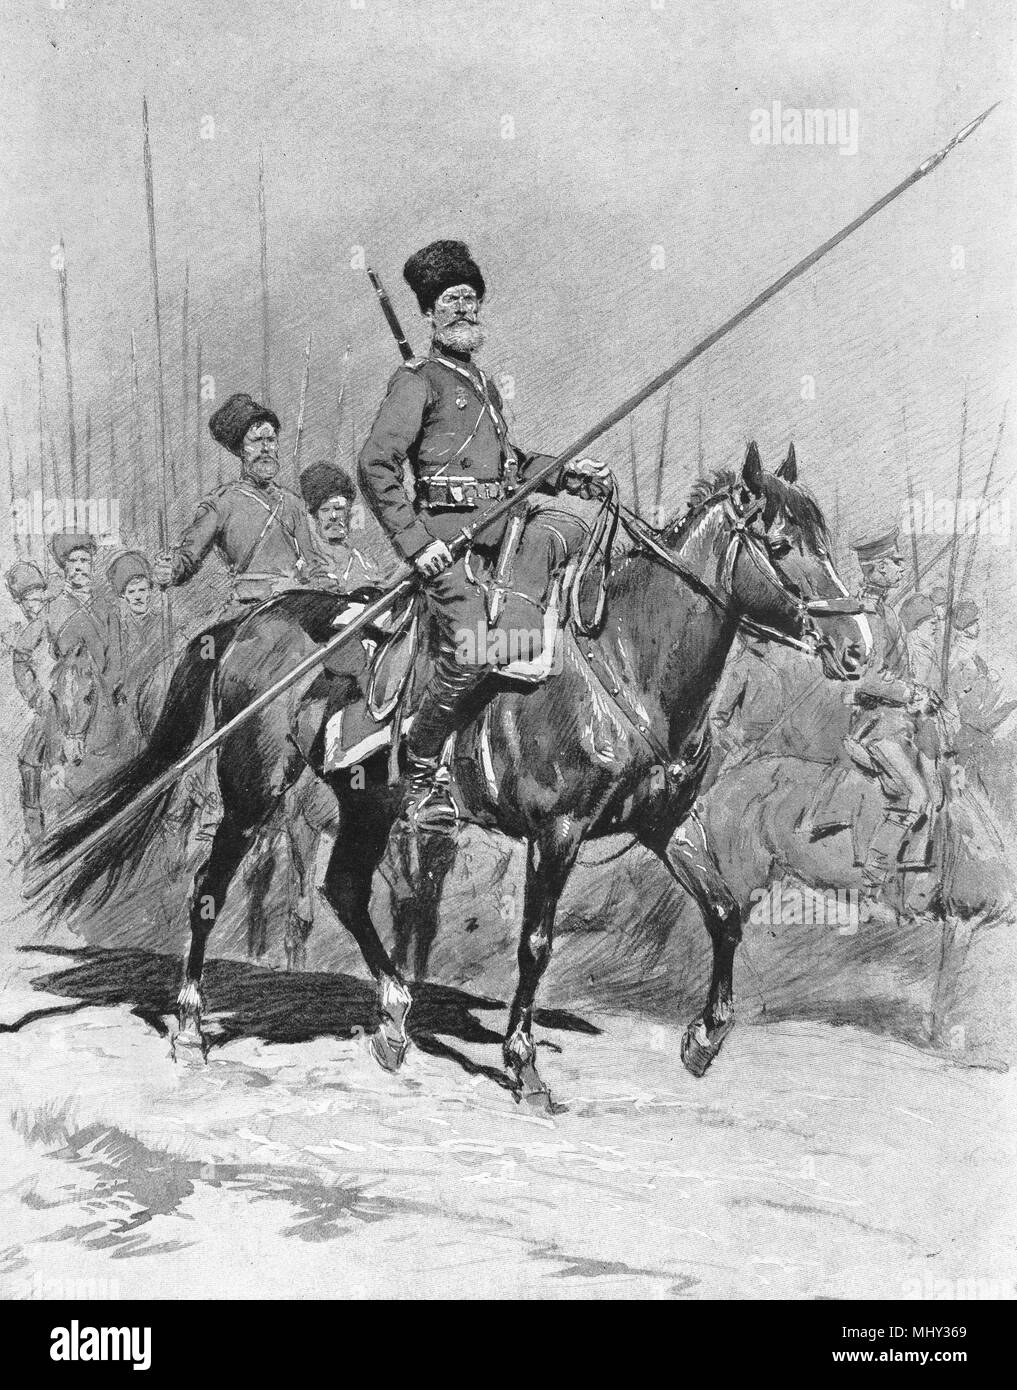 Cossacks cavalry, First World War, Russia - Stock Image